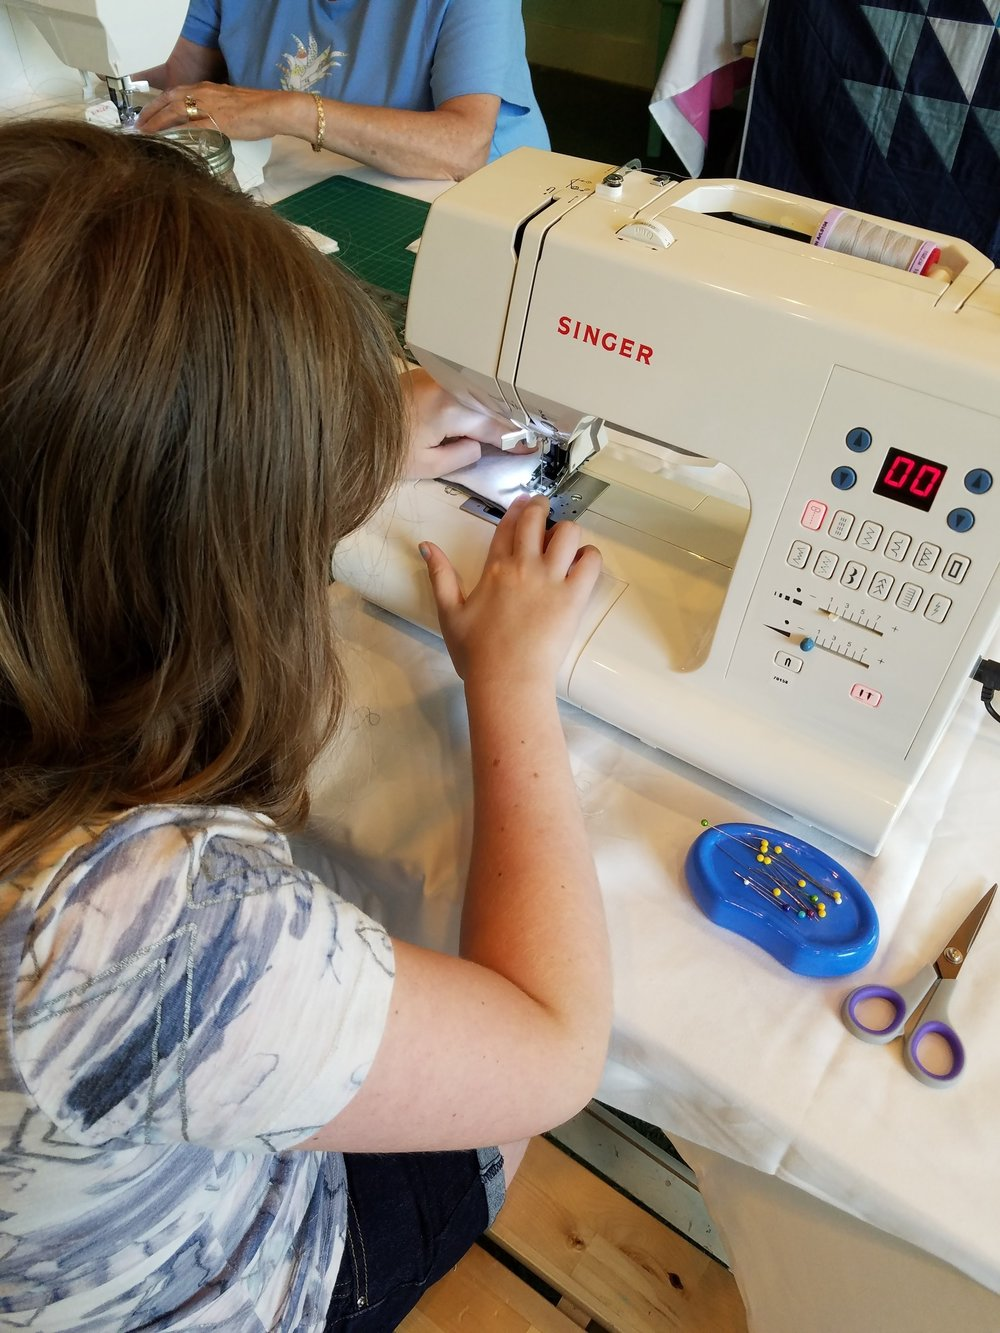 Sewing workshops perfect for any age and any skillset